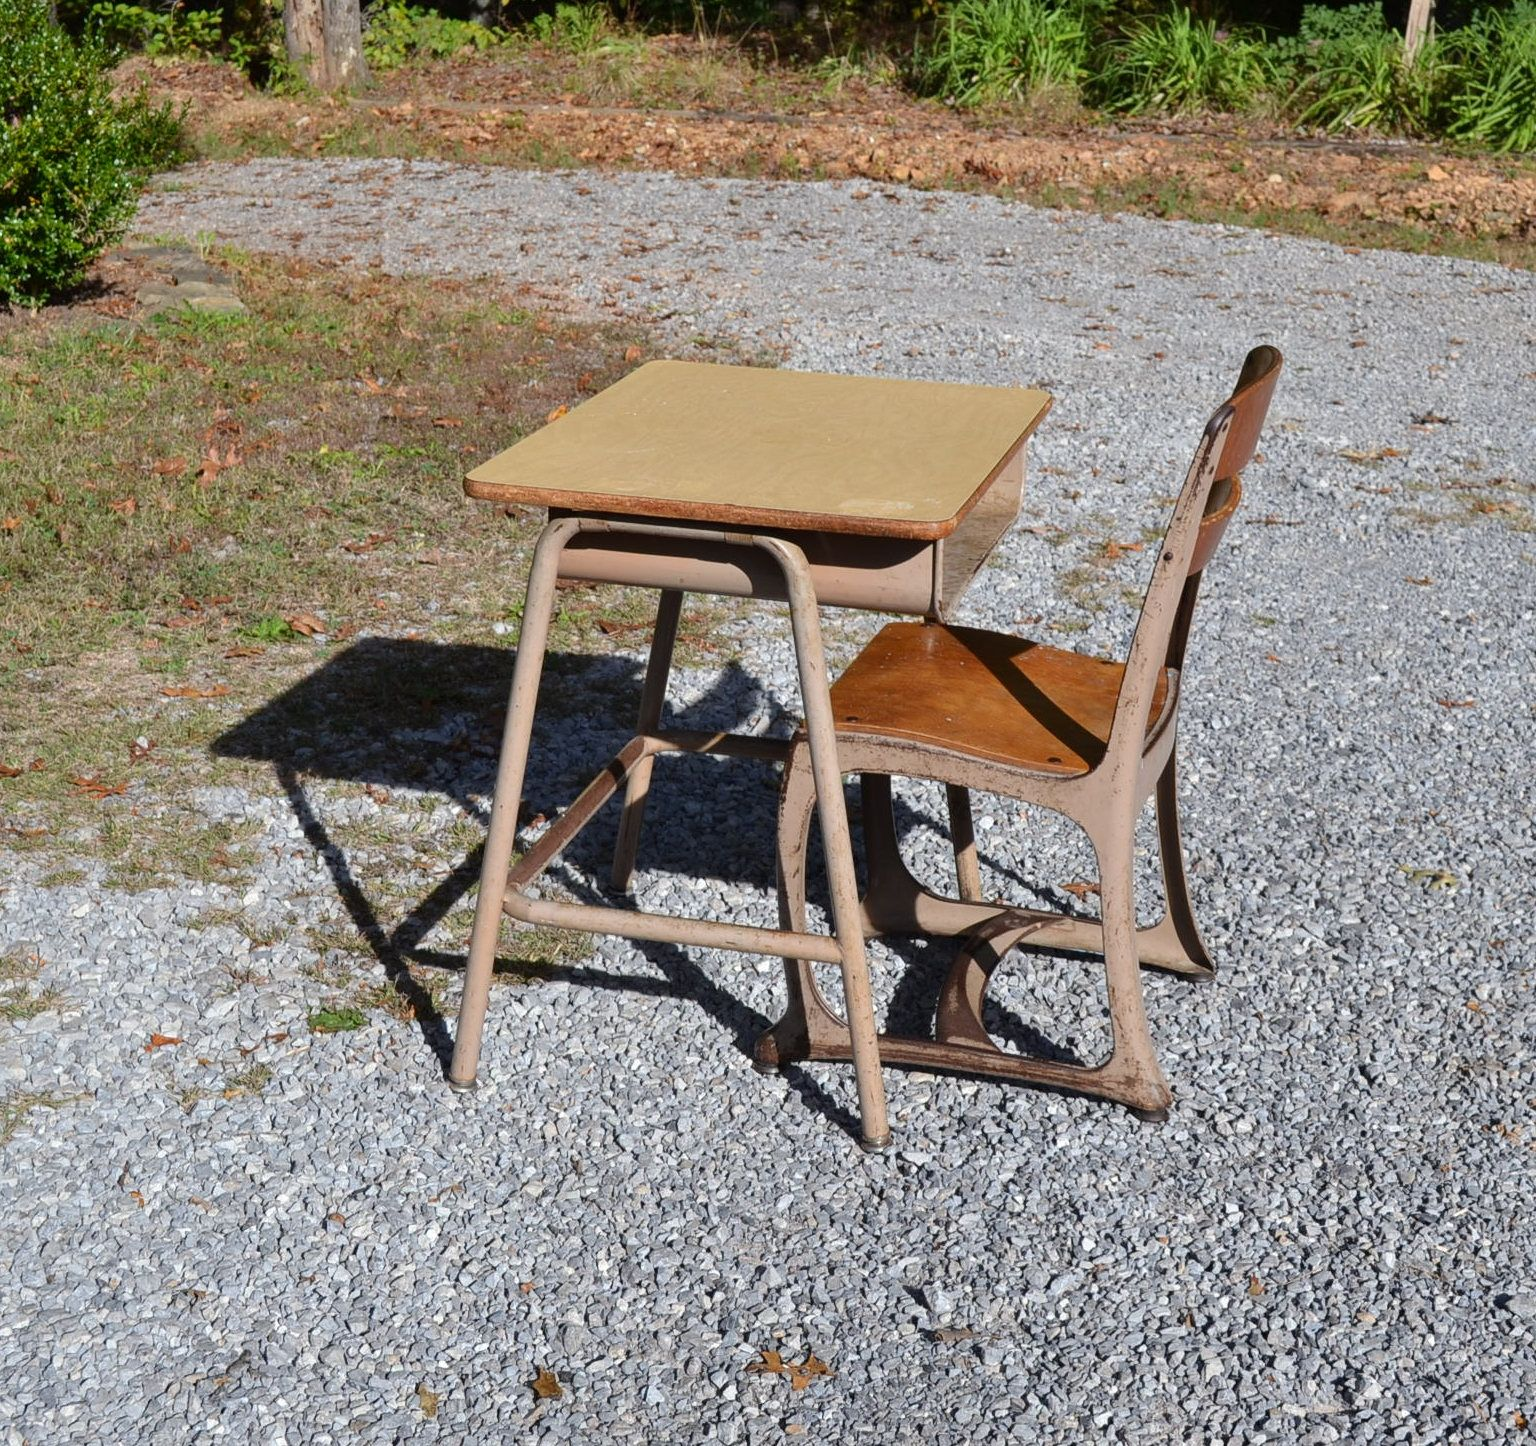 Vintage School Desk And Chair Child Size Metal And Wood Kids Homework Craft  Table Home School Panchosporch By PanchosPorch On Etsy